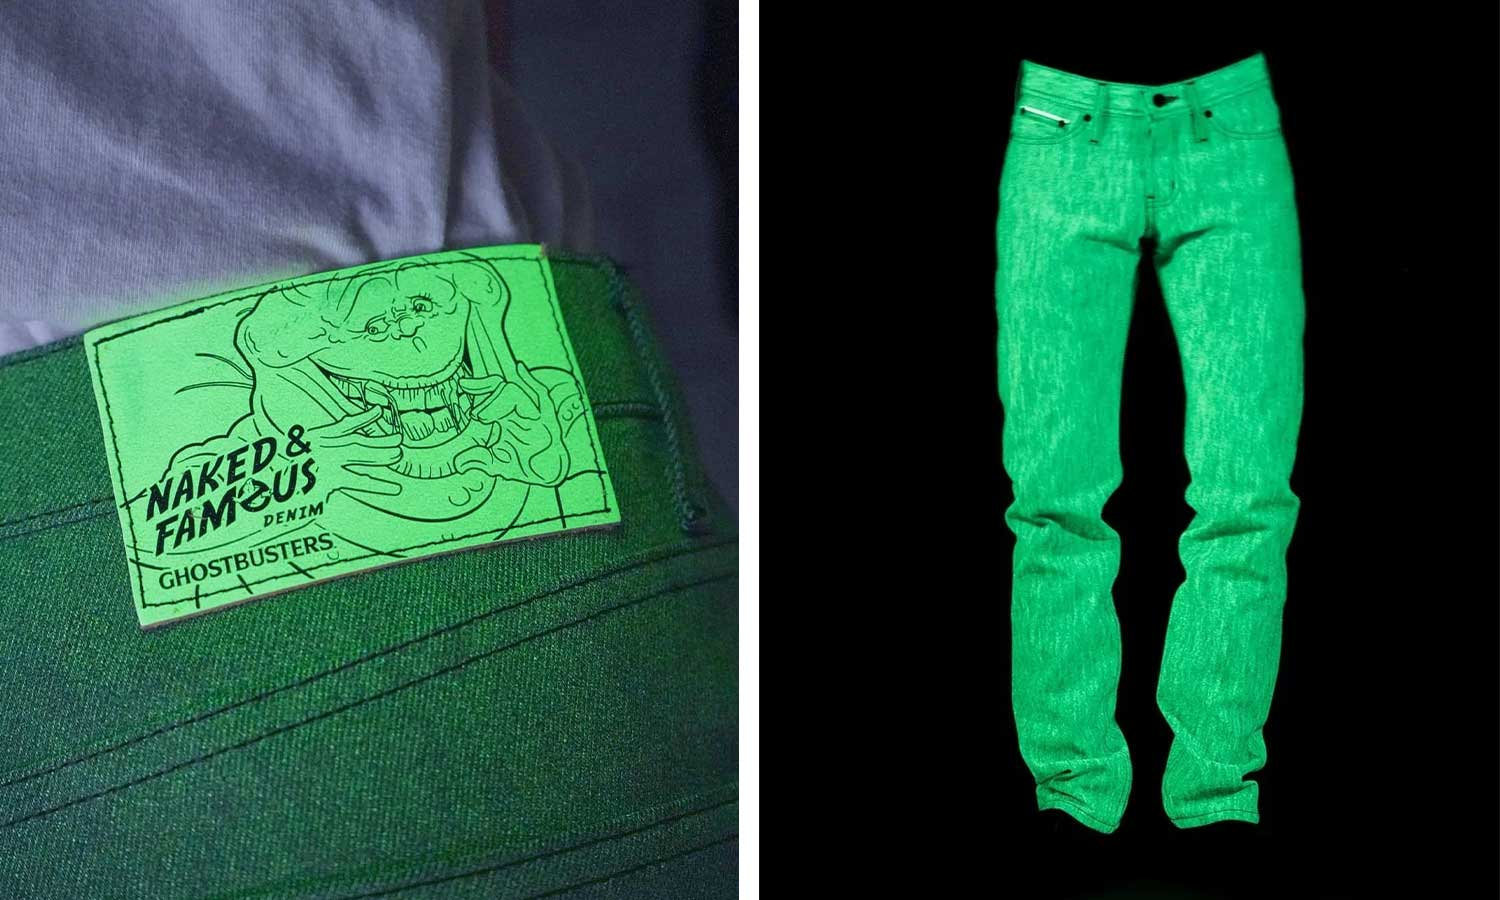 Glow-in-the-dark denim with ghostbusters logo on the leather patch